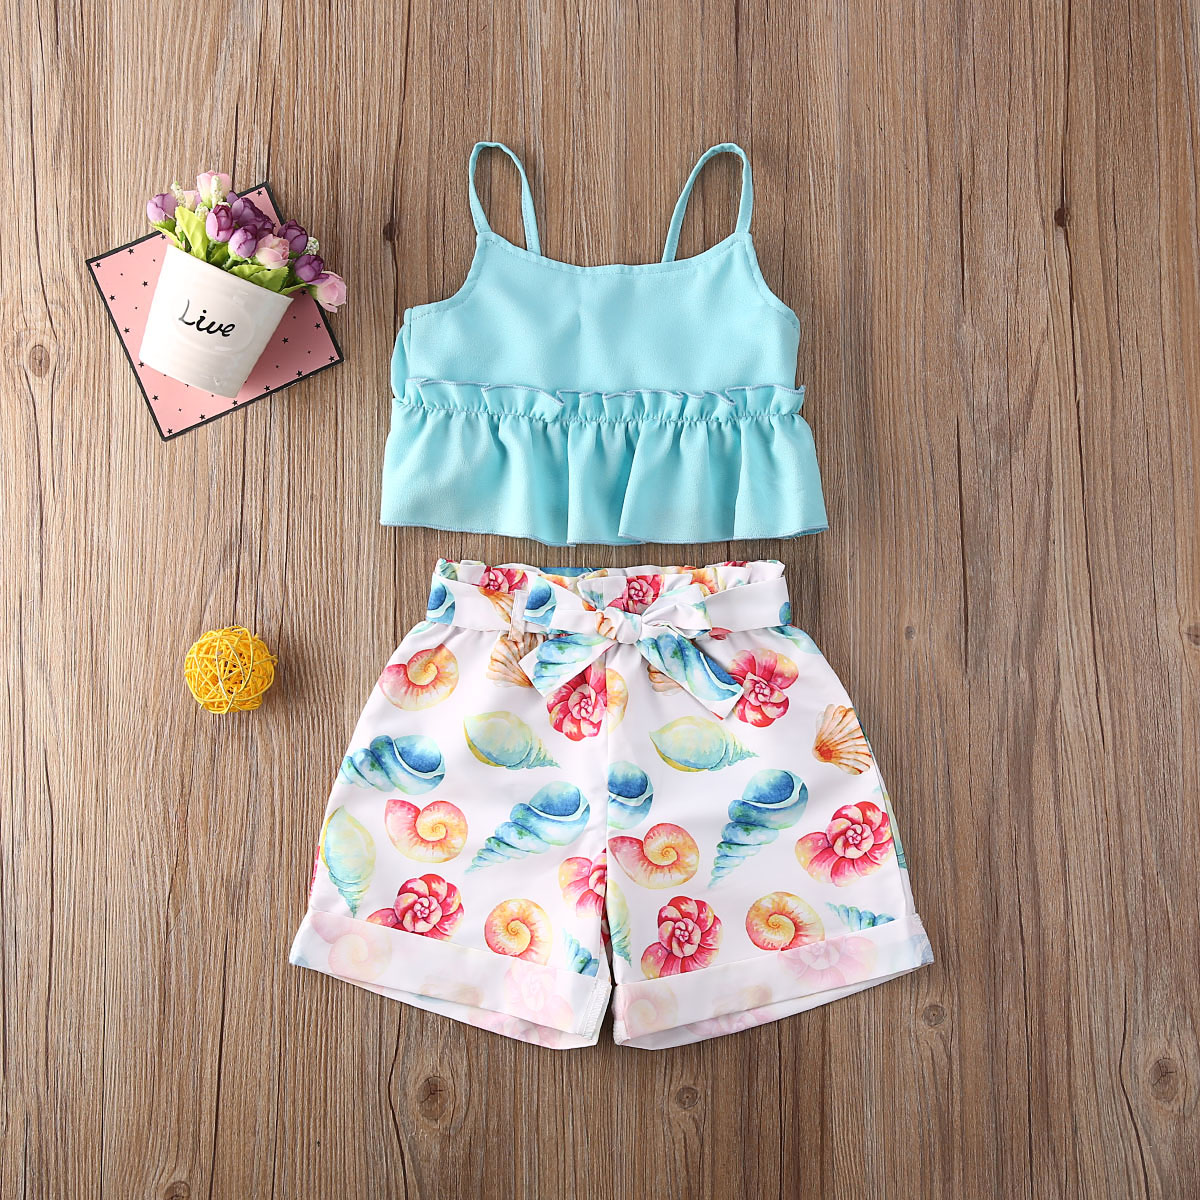 Pudcoco Toddler Baby Girl Clothes Solid Color Strap Ruffle Tops Shell Print Short Pants 2Pcs Outfits Cotton Clothes Causal Set